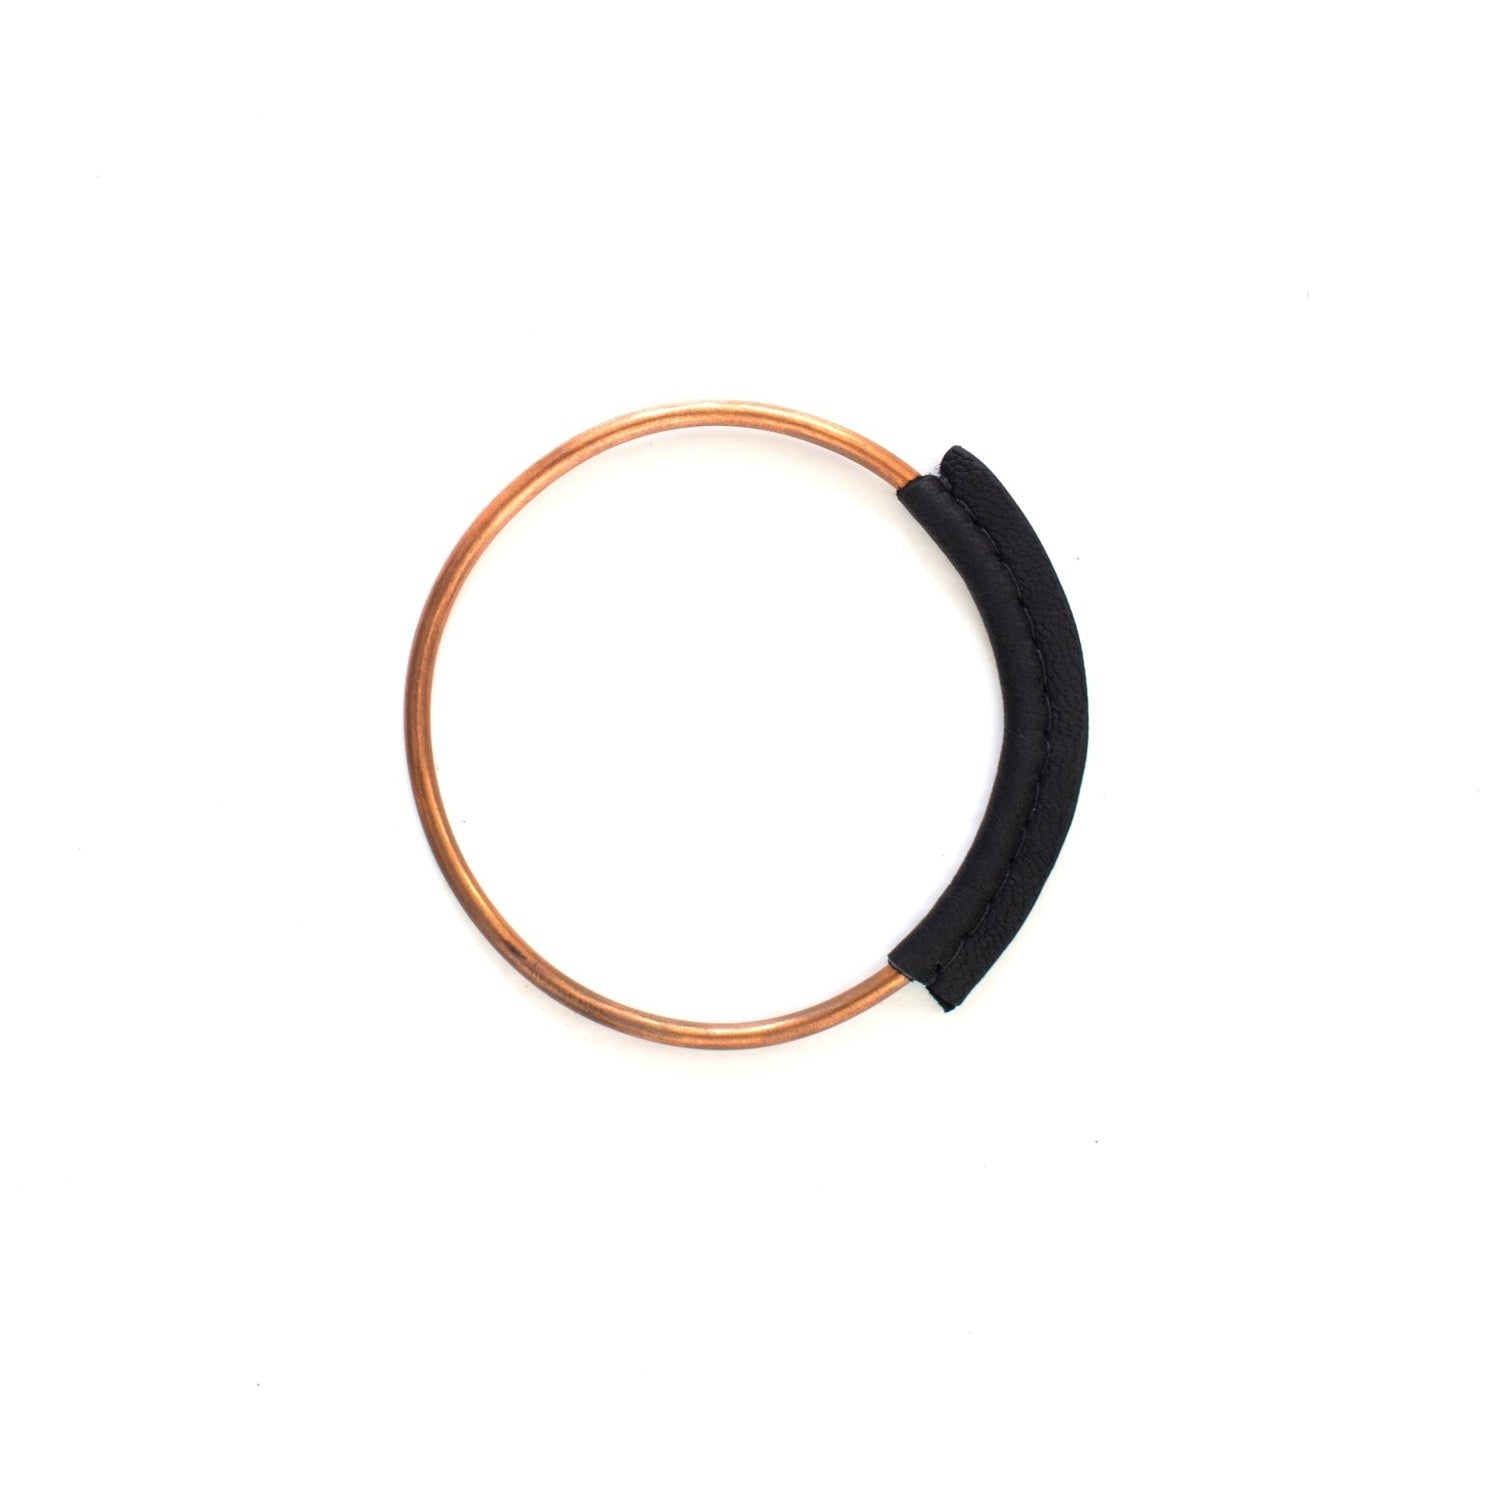 Haiti Design Co - Copper + Leather Bangle